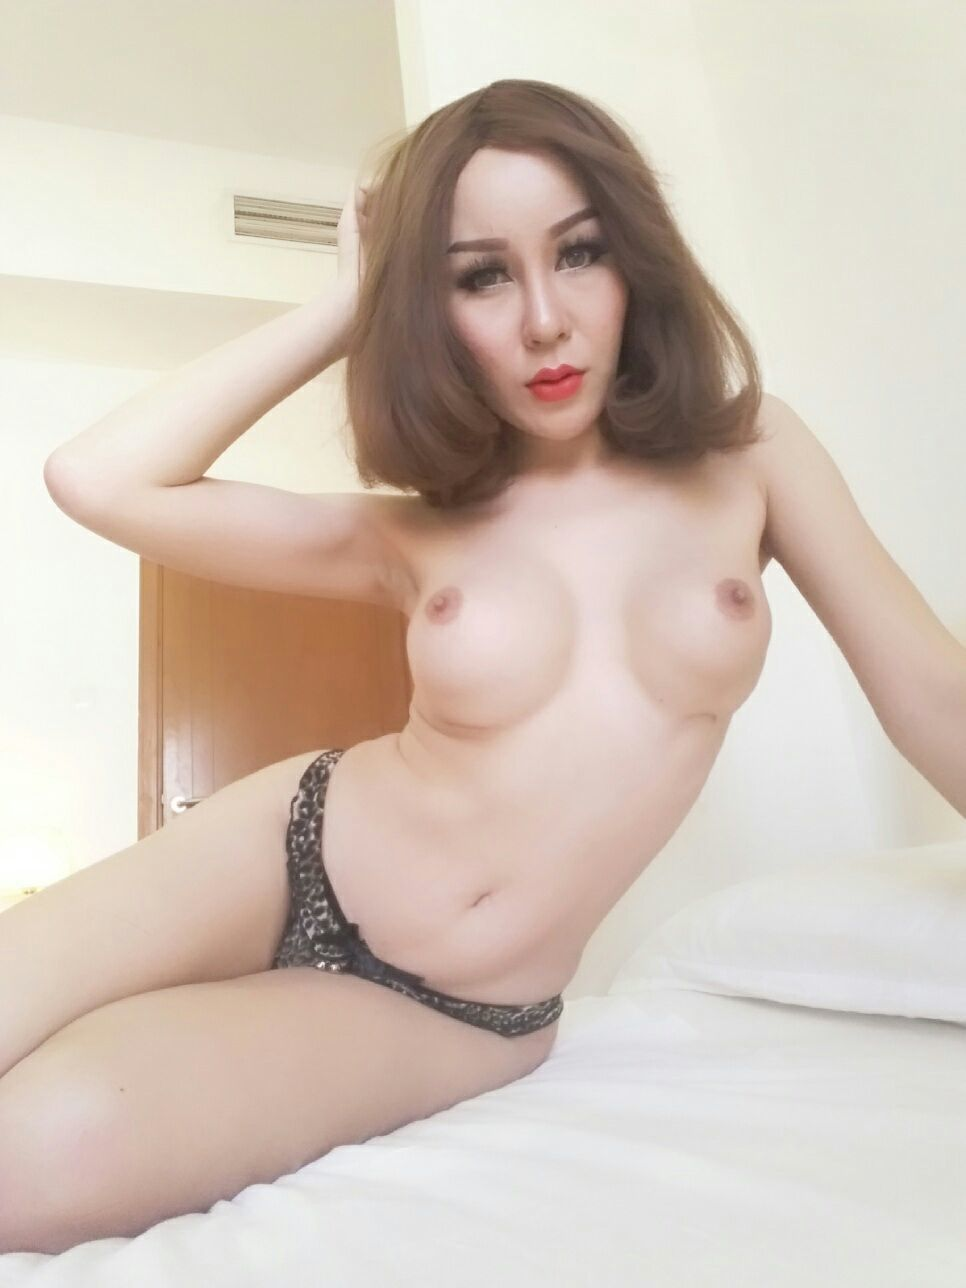 thai escort shemale dating